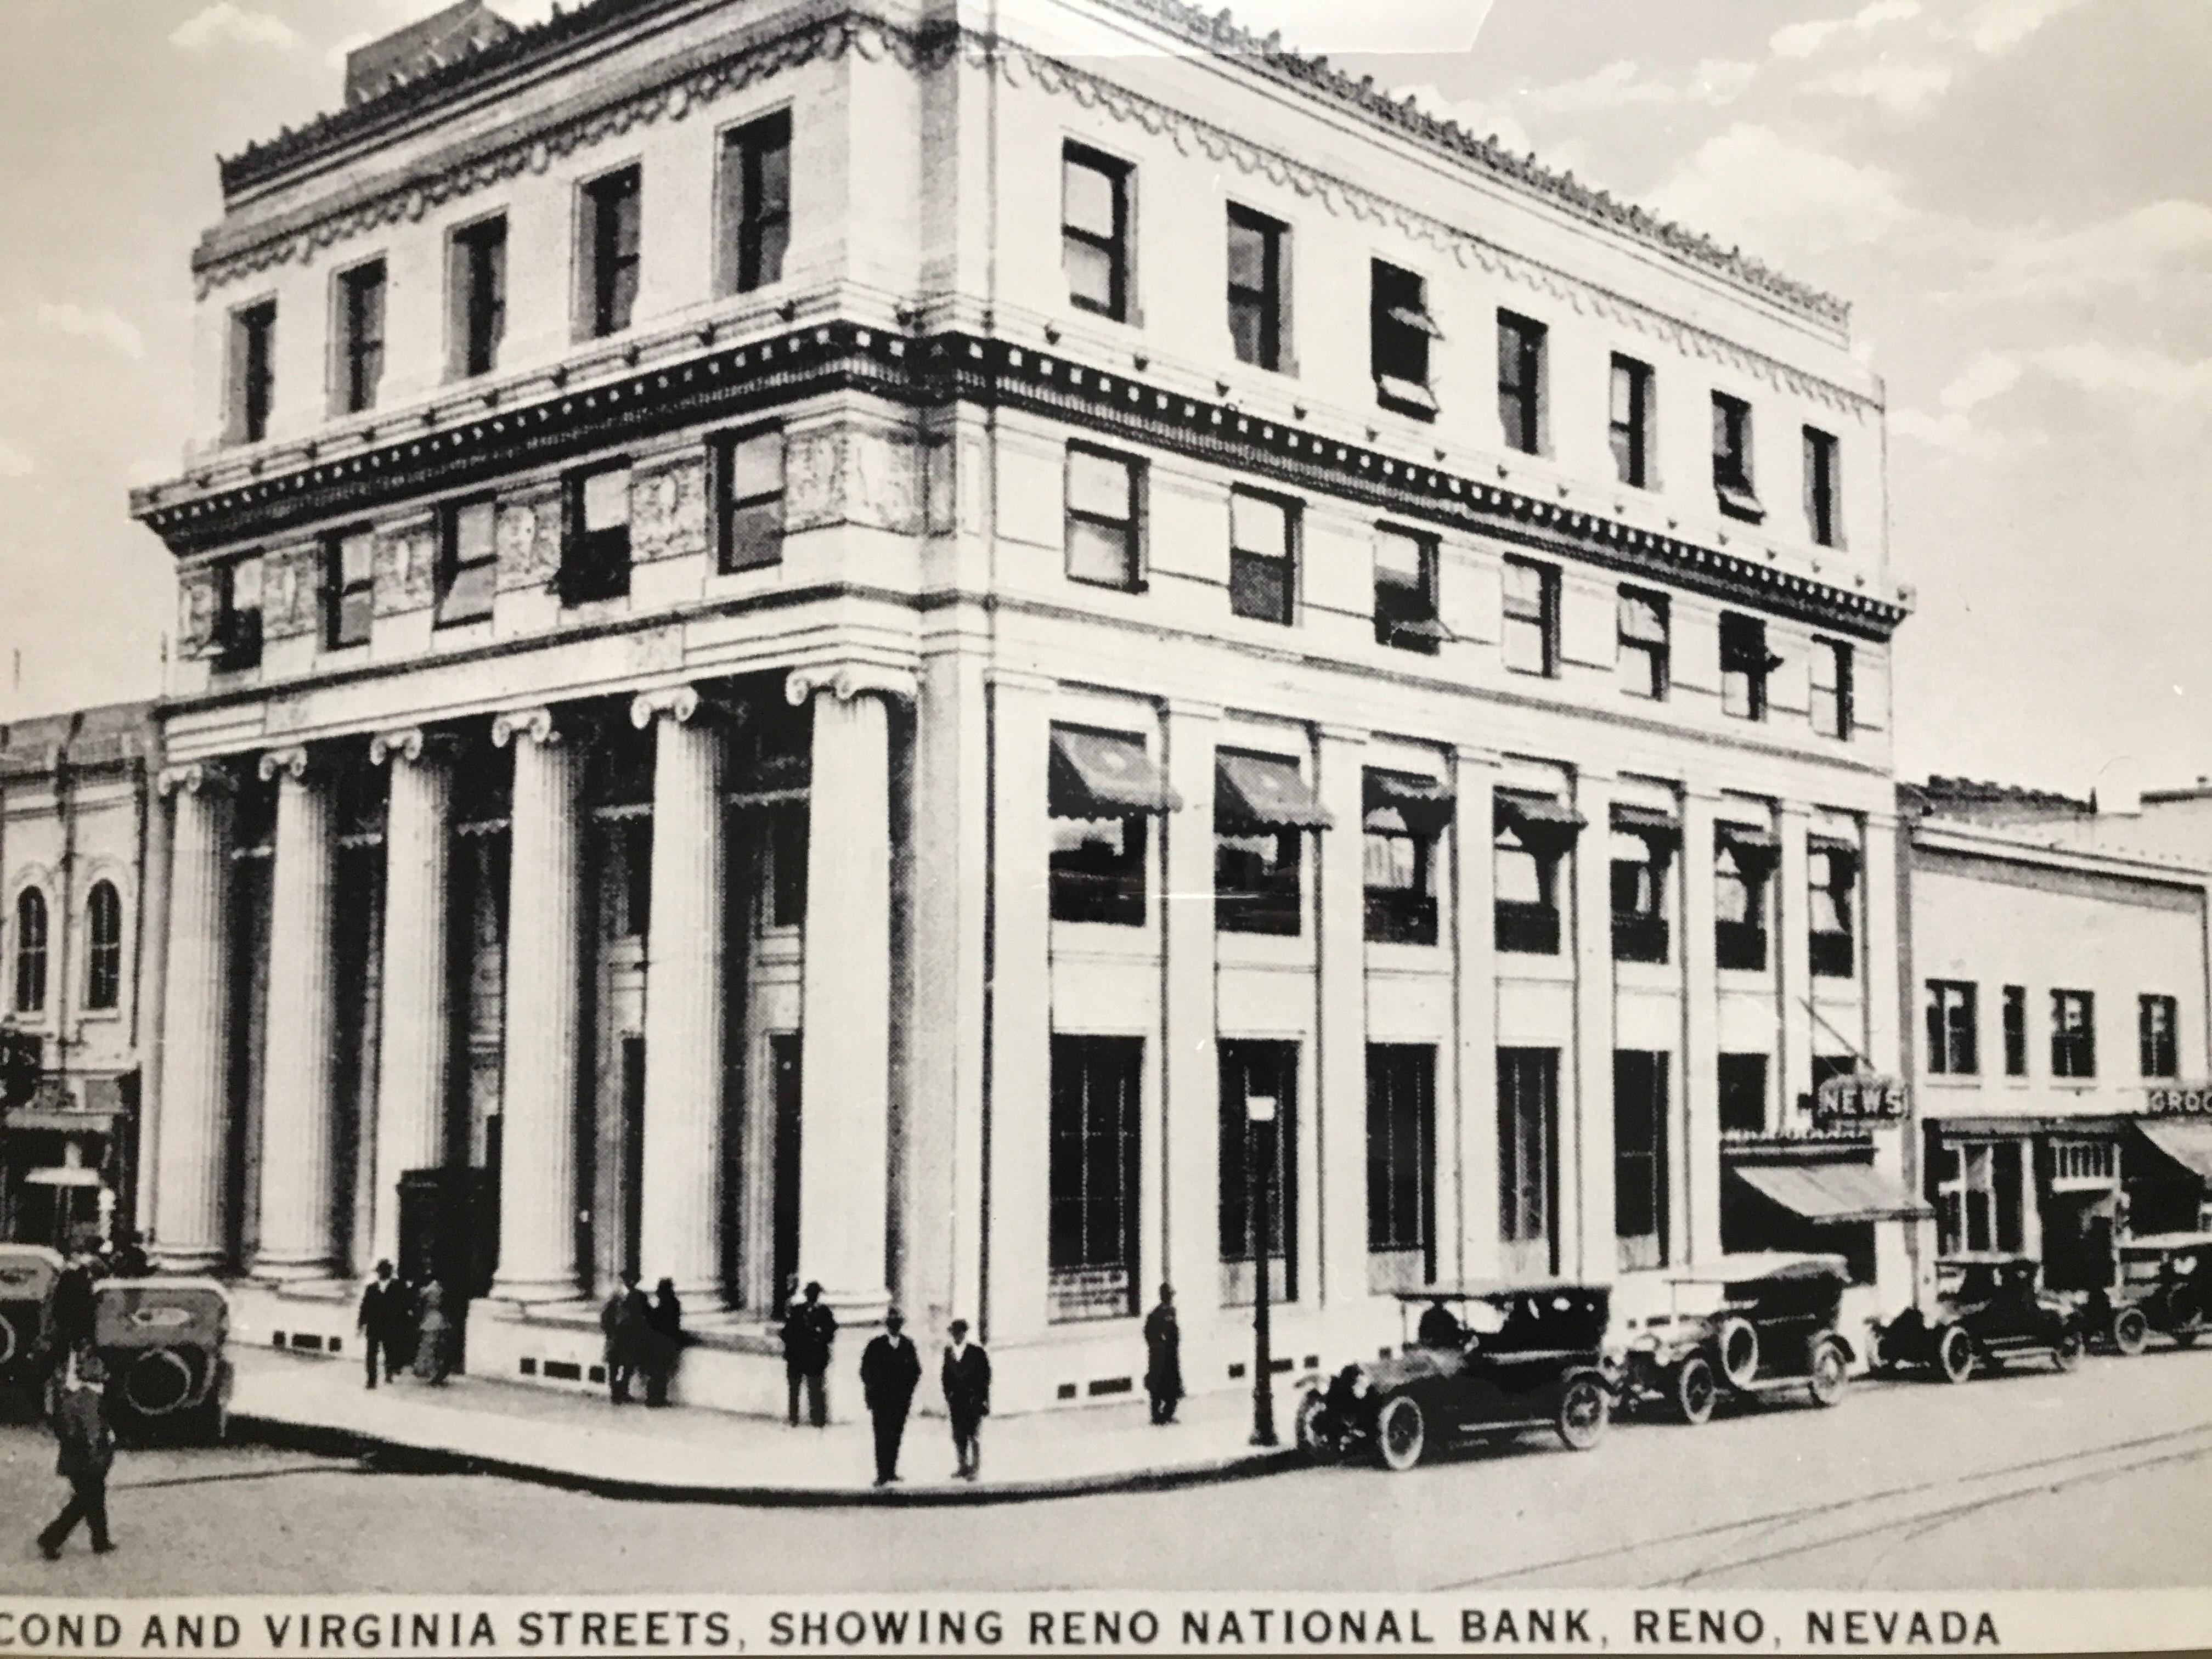 The 1915 Reno national bank building was designed for George Wingfield by Reno's pre-eminent architect, Frederic DeLongchamps, to house one of Wingfield's banks, the Reno National Bank. Designed early in DeLongchamps' career, the building is an impressive and exceptional Classical Revival style Terra Cotta structure with extensive, low relief sculptural ornamentation and Ionic columns and other Classical elements. Today, the Reno national Bank still stands as present day Ichiban Restaurant by Harrah's. (Photo courtesy: Nevada Historical Society)